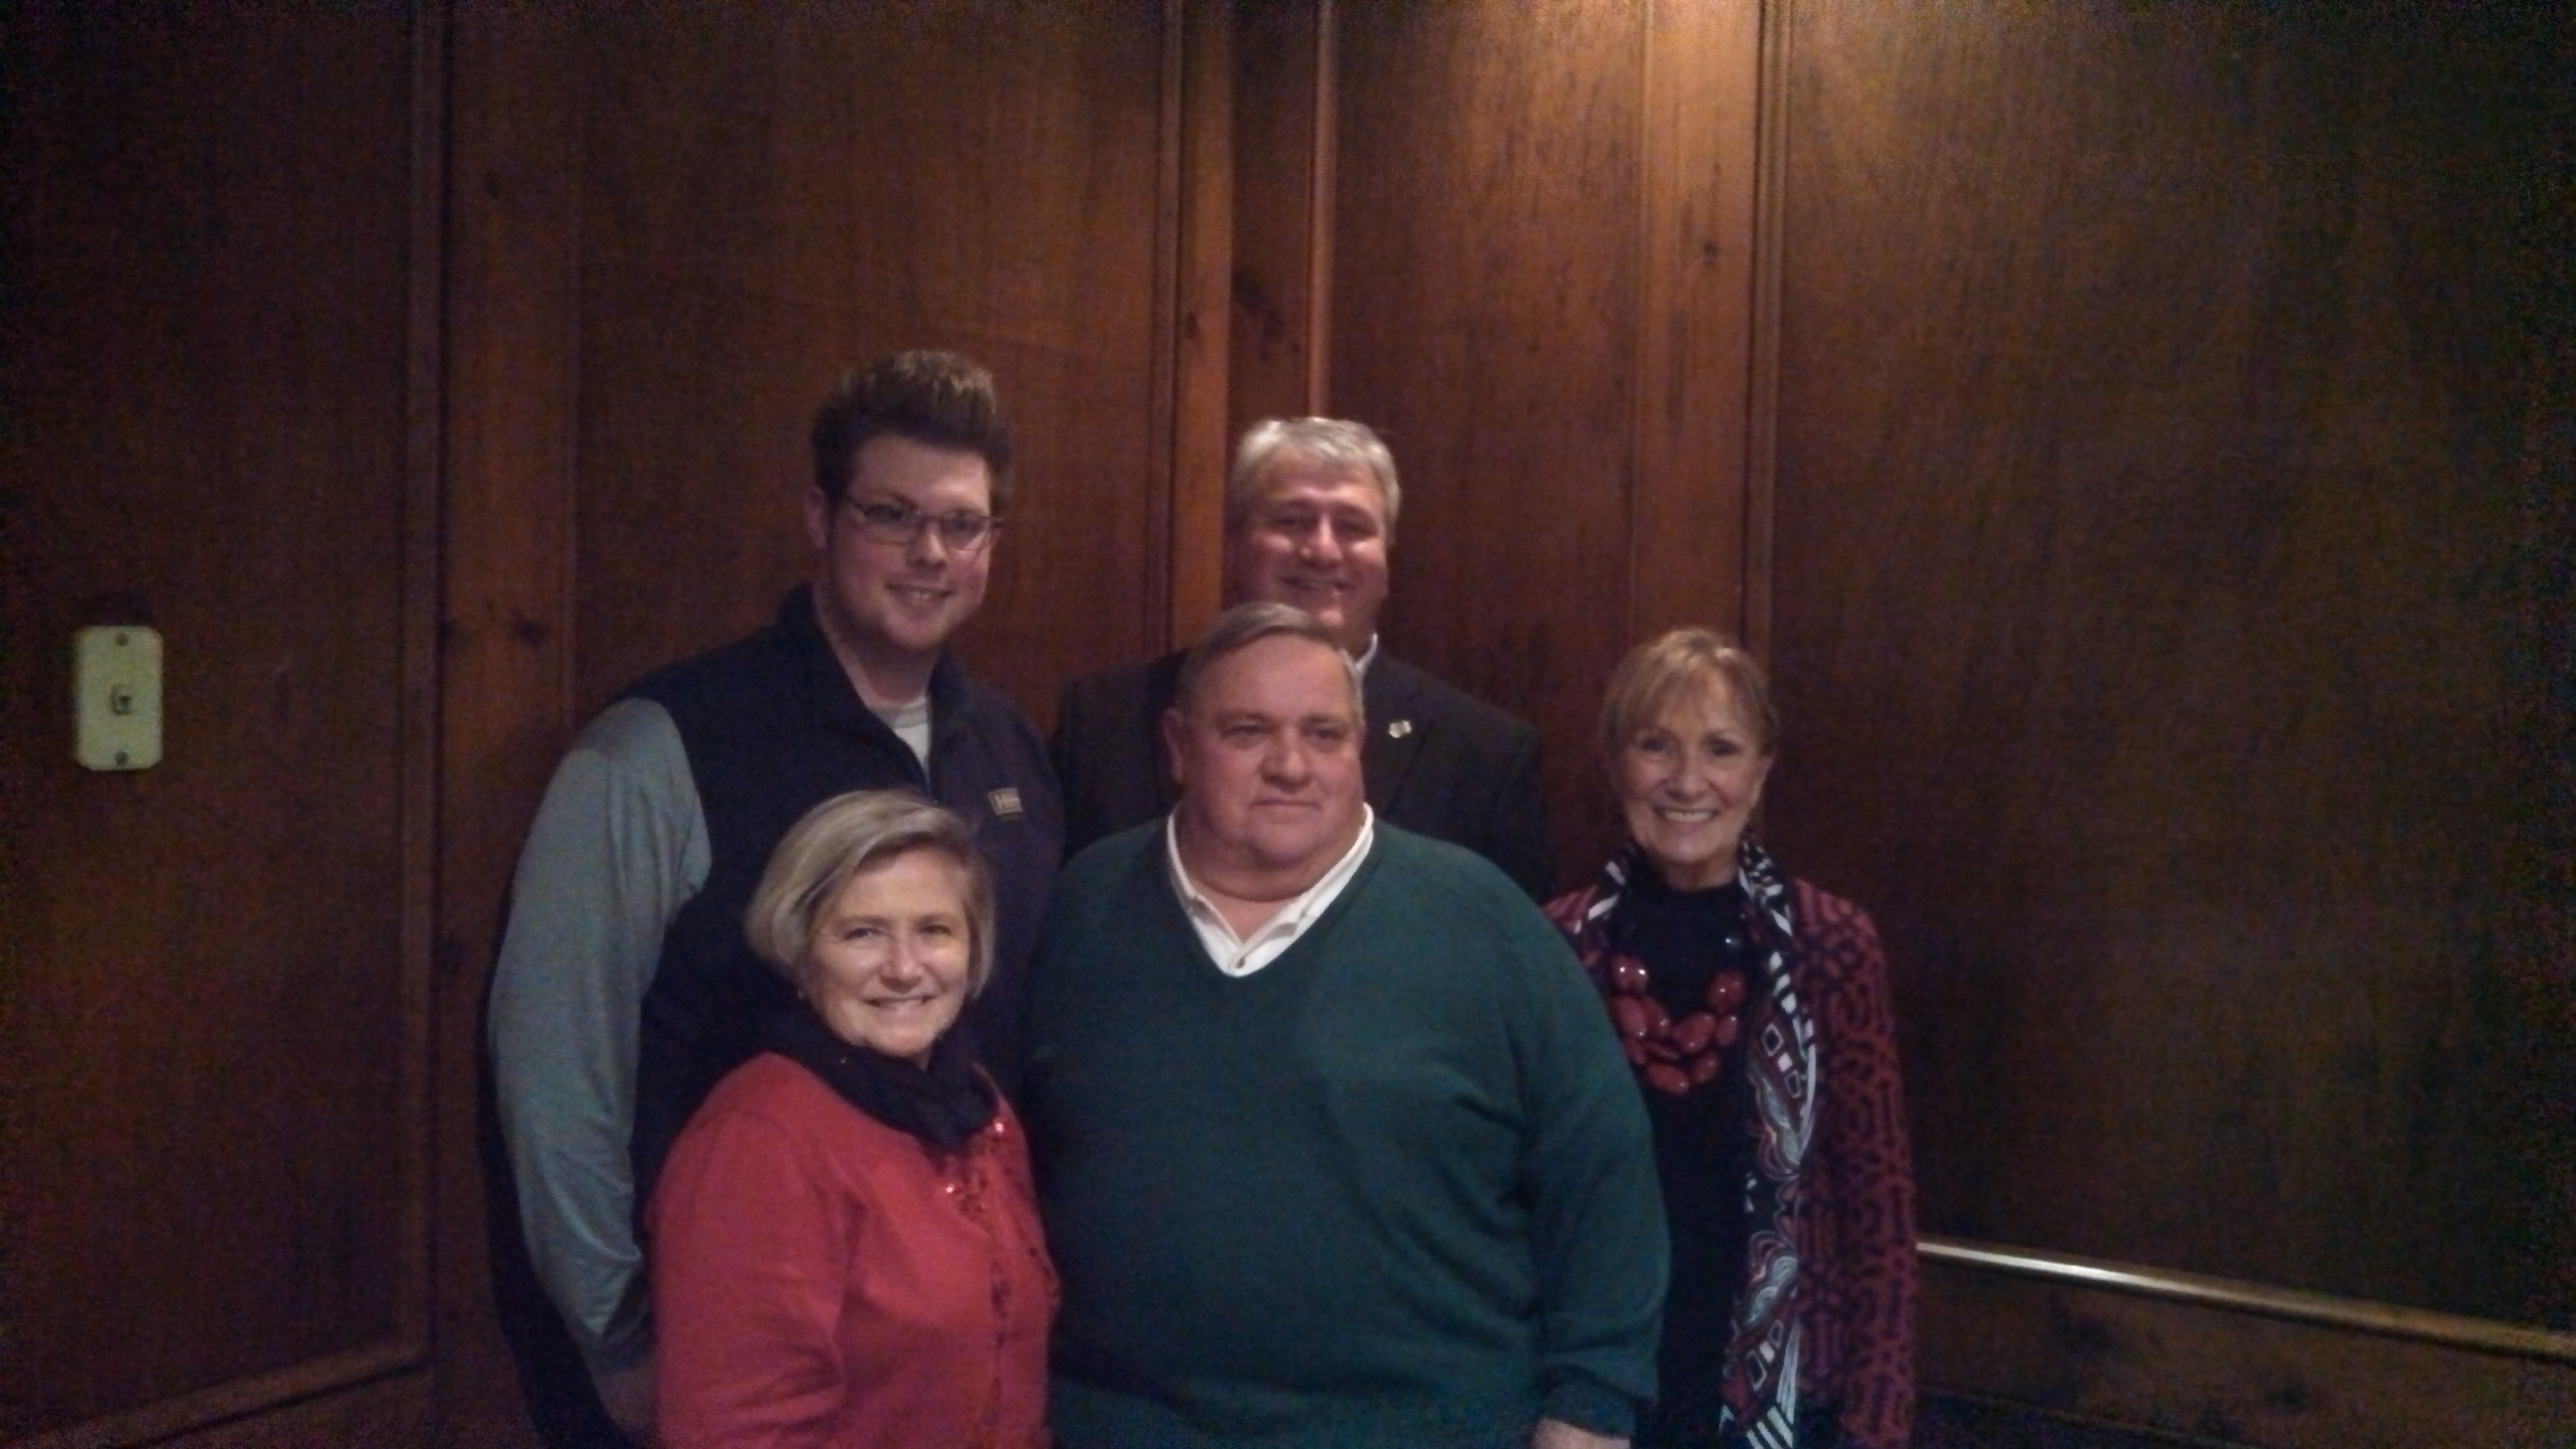 Howard Hanna Holt Real Estate REALTORS of the Year Sandy Haines, Doug Hooper, Matthew Wroda, Steve Holt, Diana Holt